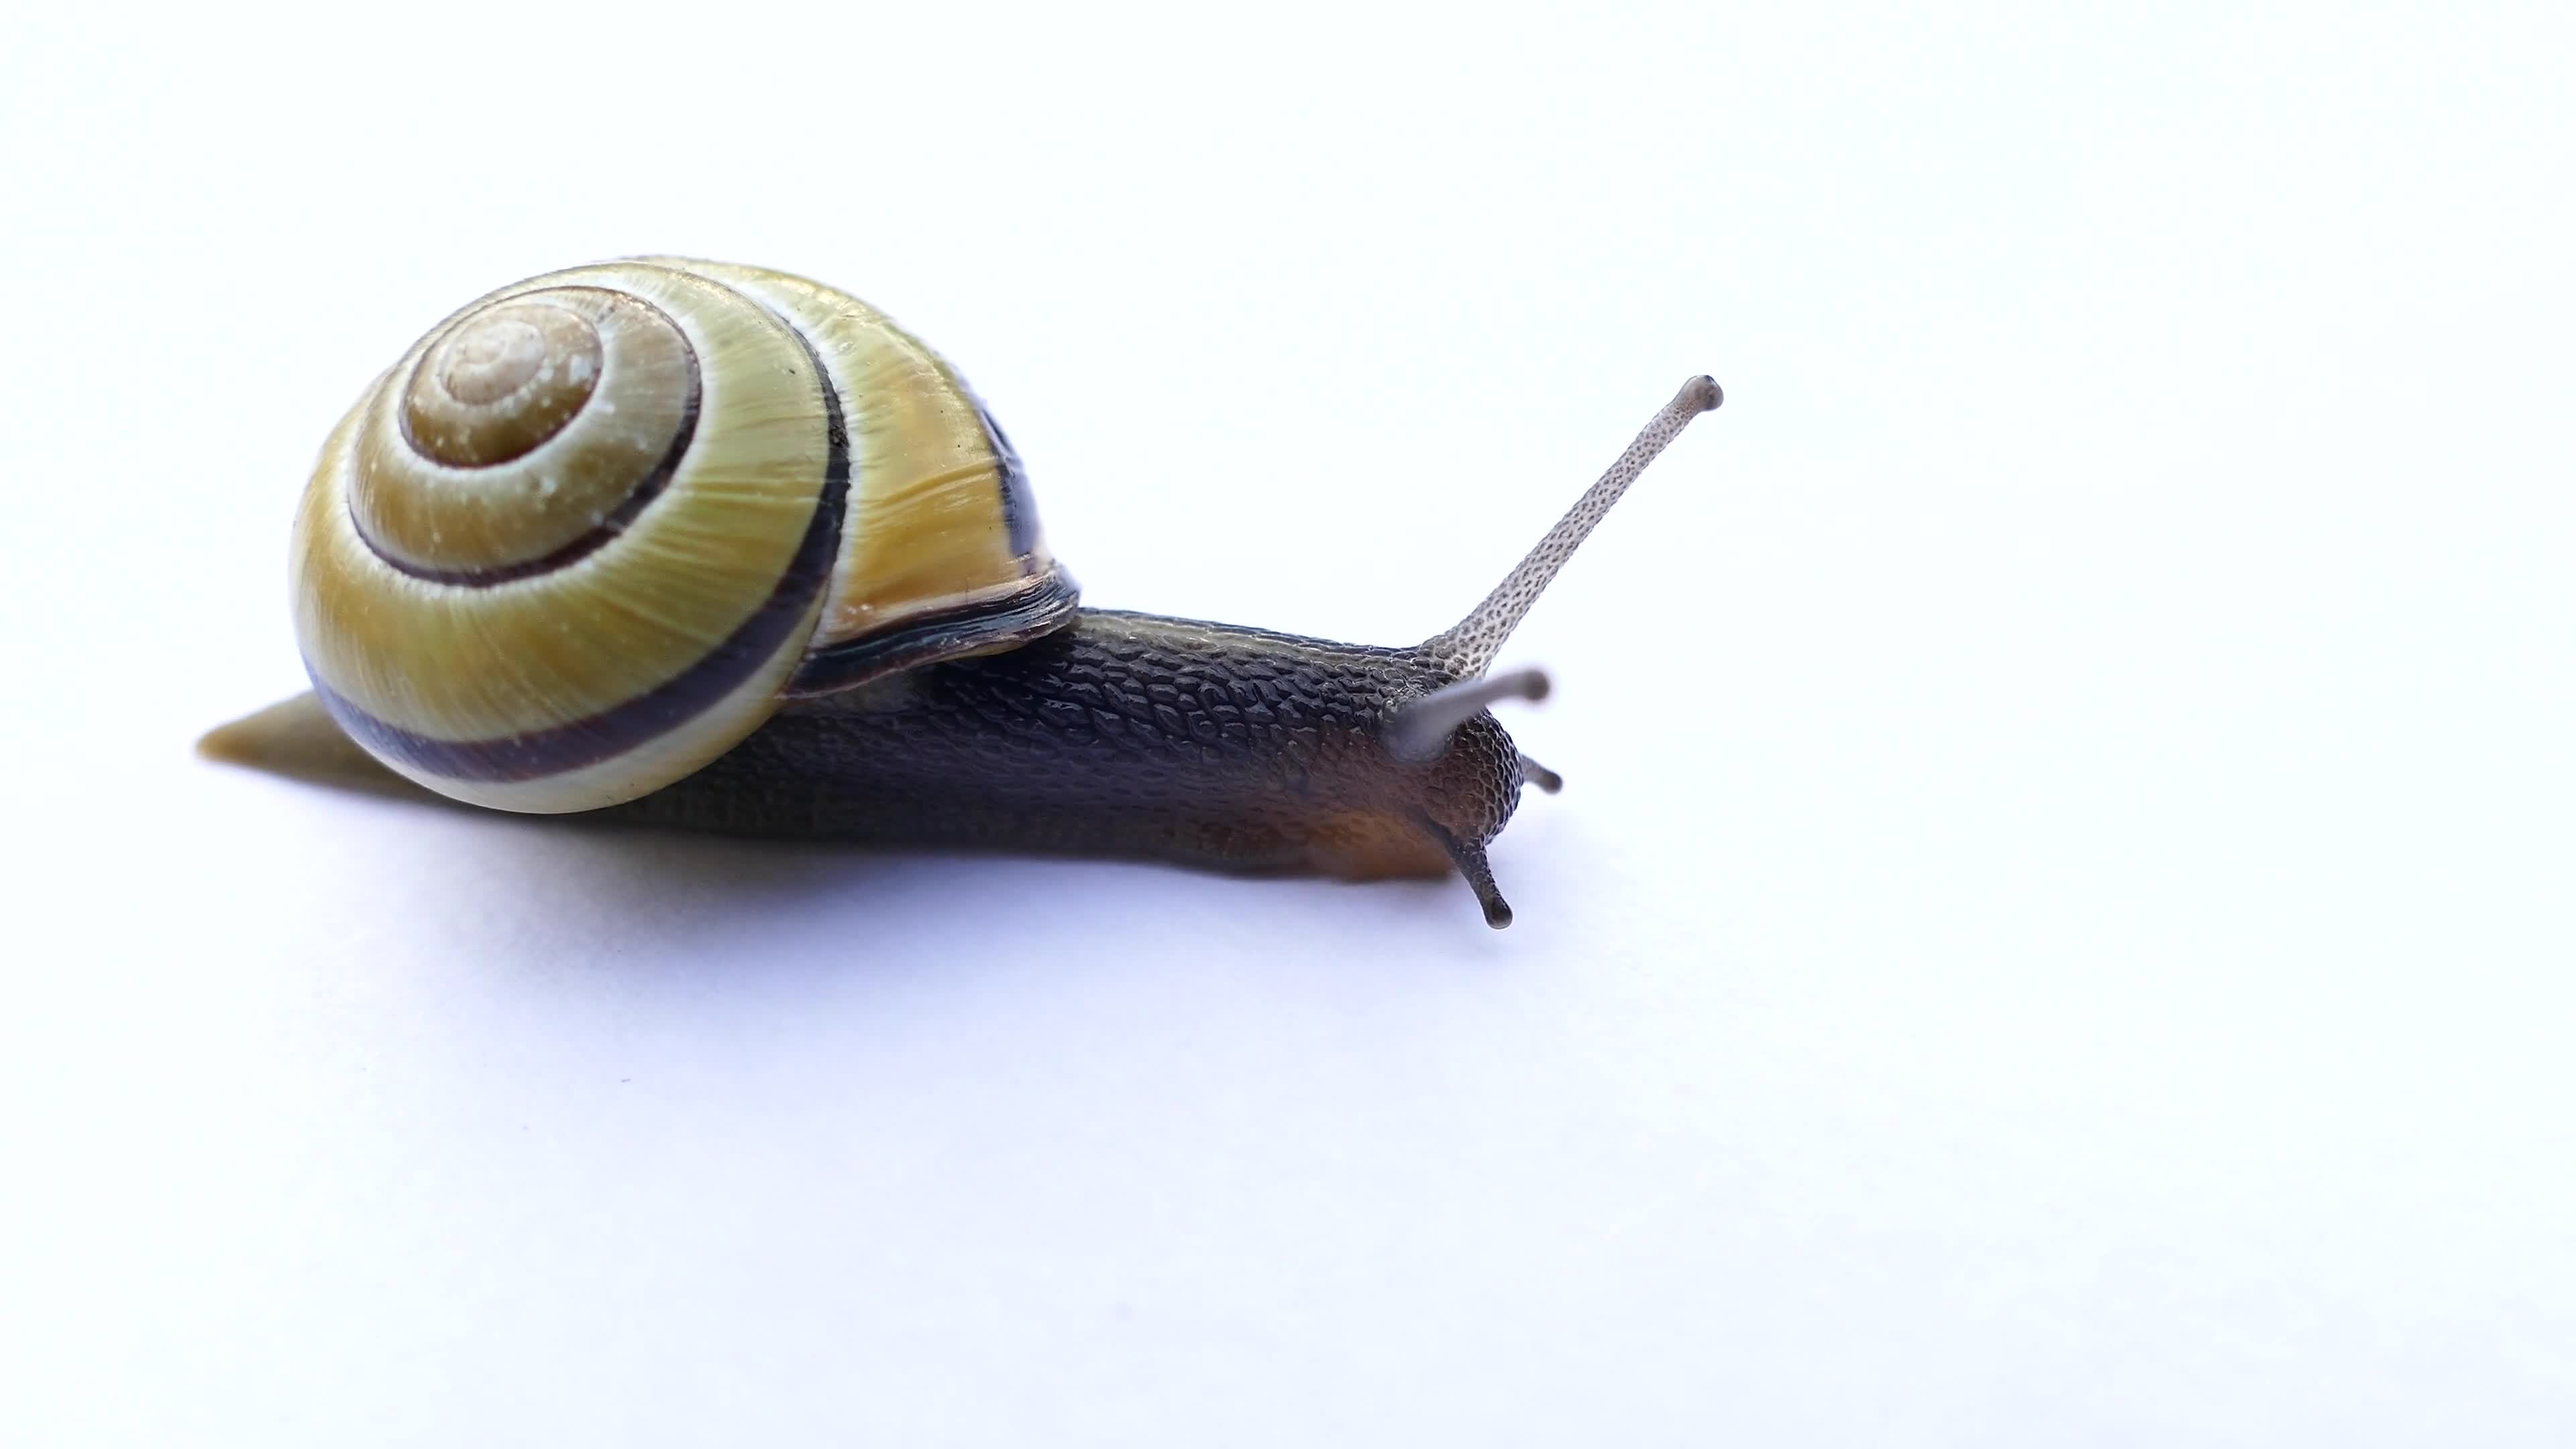 Video of snail